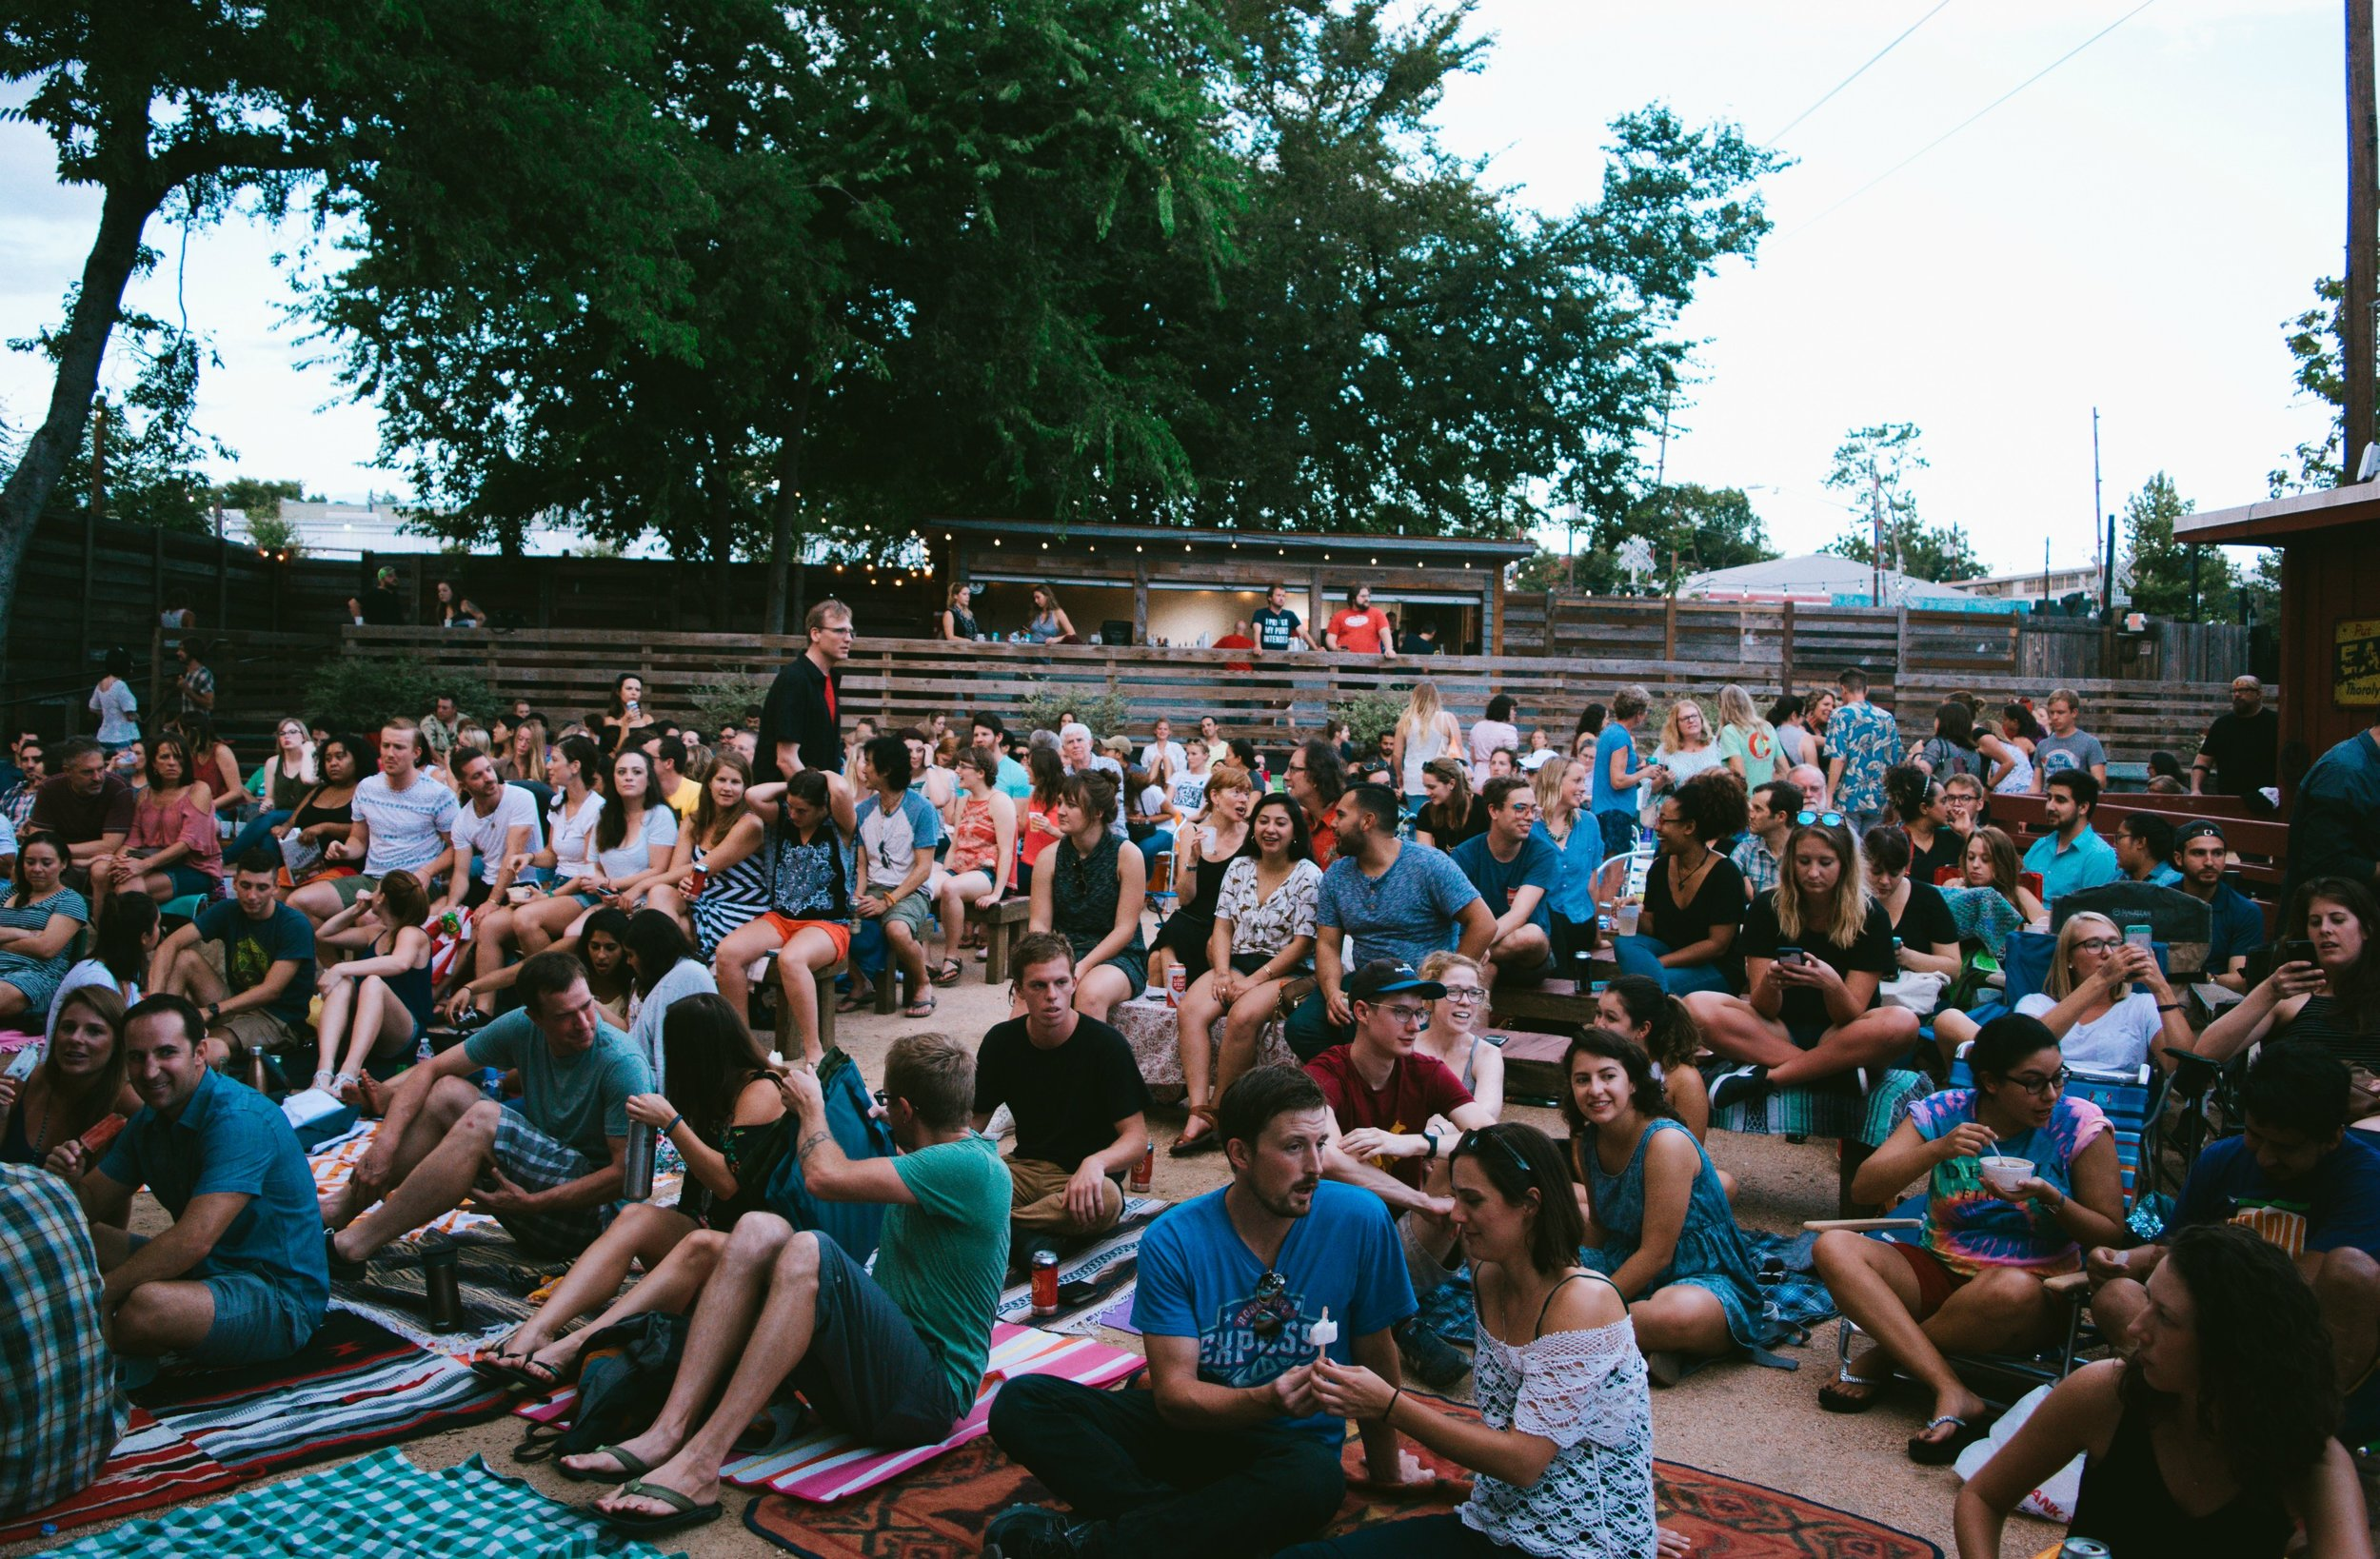 The next Backyard Story Night will be on Sunday, Oct. 16 at 8 p.m. at the Historic Scoot Inn in East Austin.